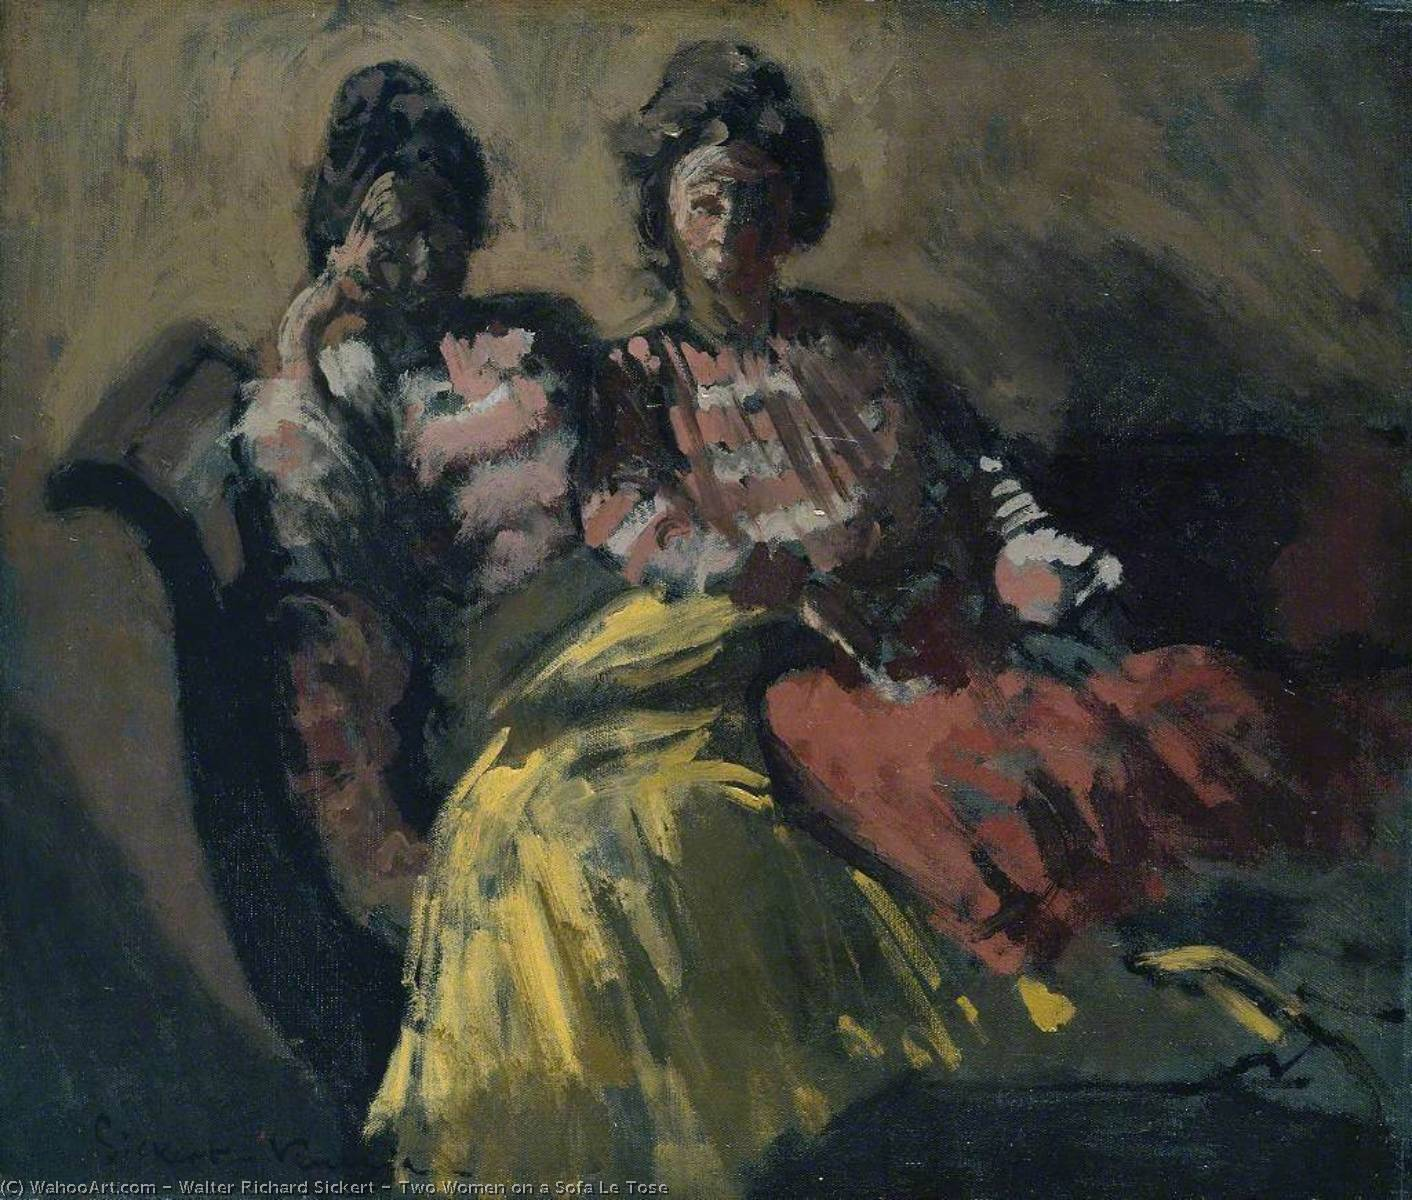 famous painting Two Women on a Sofa Le Tose of Walter Richard Sickert